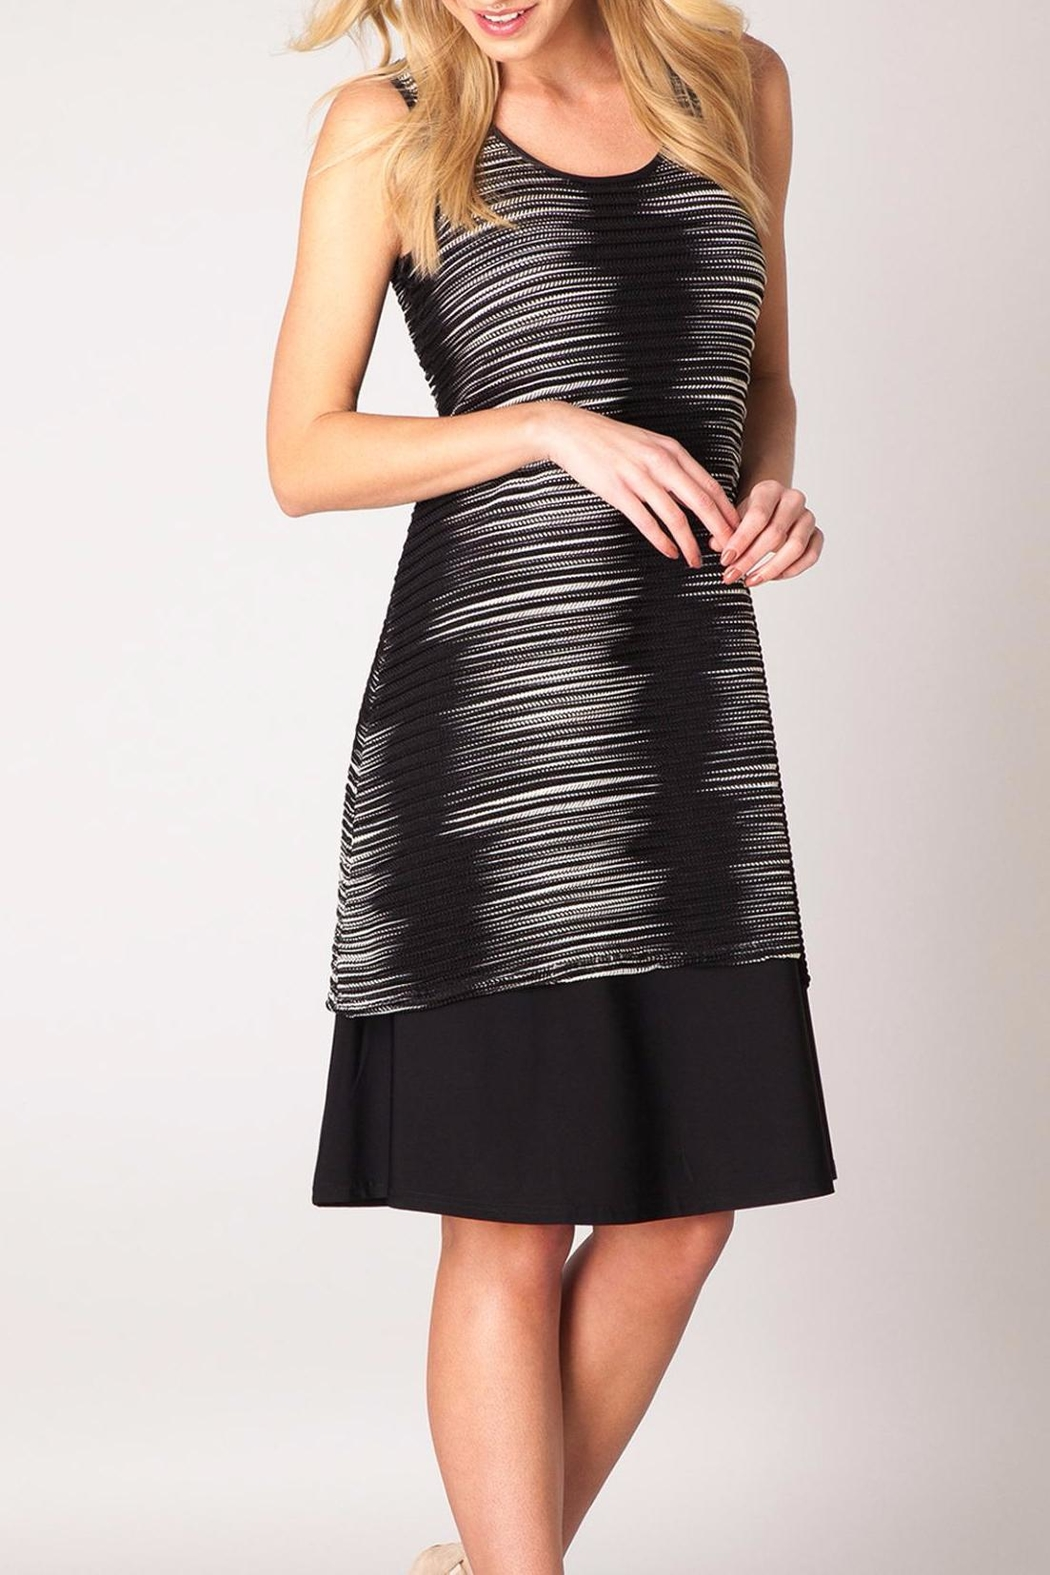 Colletta Zizag Sleeveless Dress - Main Image